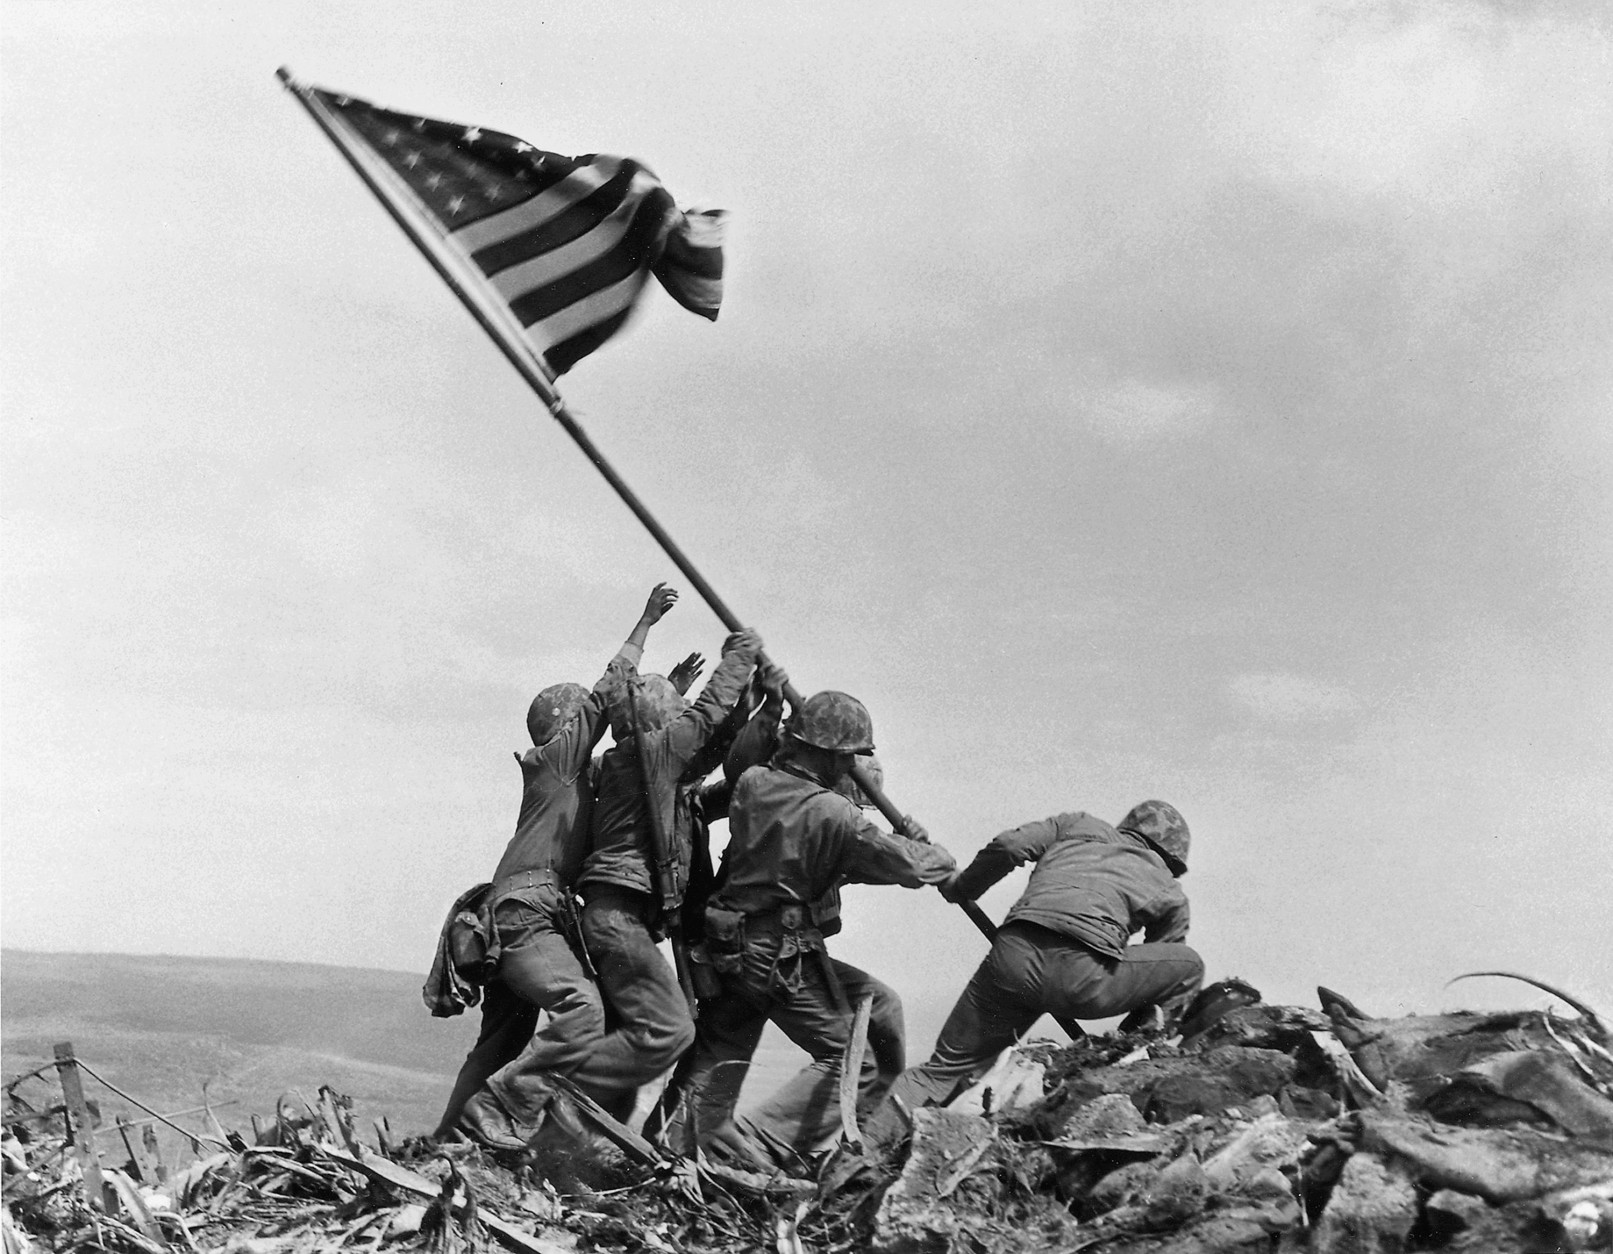 FILE - In this Feb. 23, 1945, file photo, U.S. Marines of the 28th Regiment, 5th Division, raise a U.S. flag atop Mount Suribachi, Iwo Jima. Two Gastonia, N.C., men, Joseph Tedder, 90, and Mack Drake, 89, fought alongside more than 70,000 Marines, sailors and airmen on Iwo Jima, a tiny 8-square mile speck of volcanic rock and sand midway between Guam and Tokyo, during the closing months of World War II. (AP Photo/Joe Rosenthal, File)